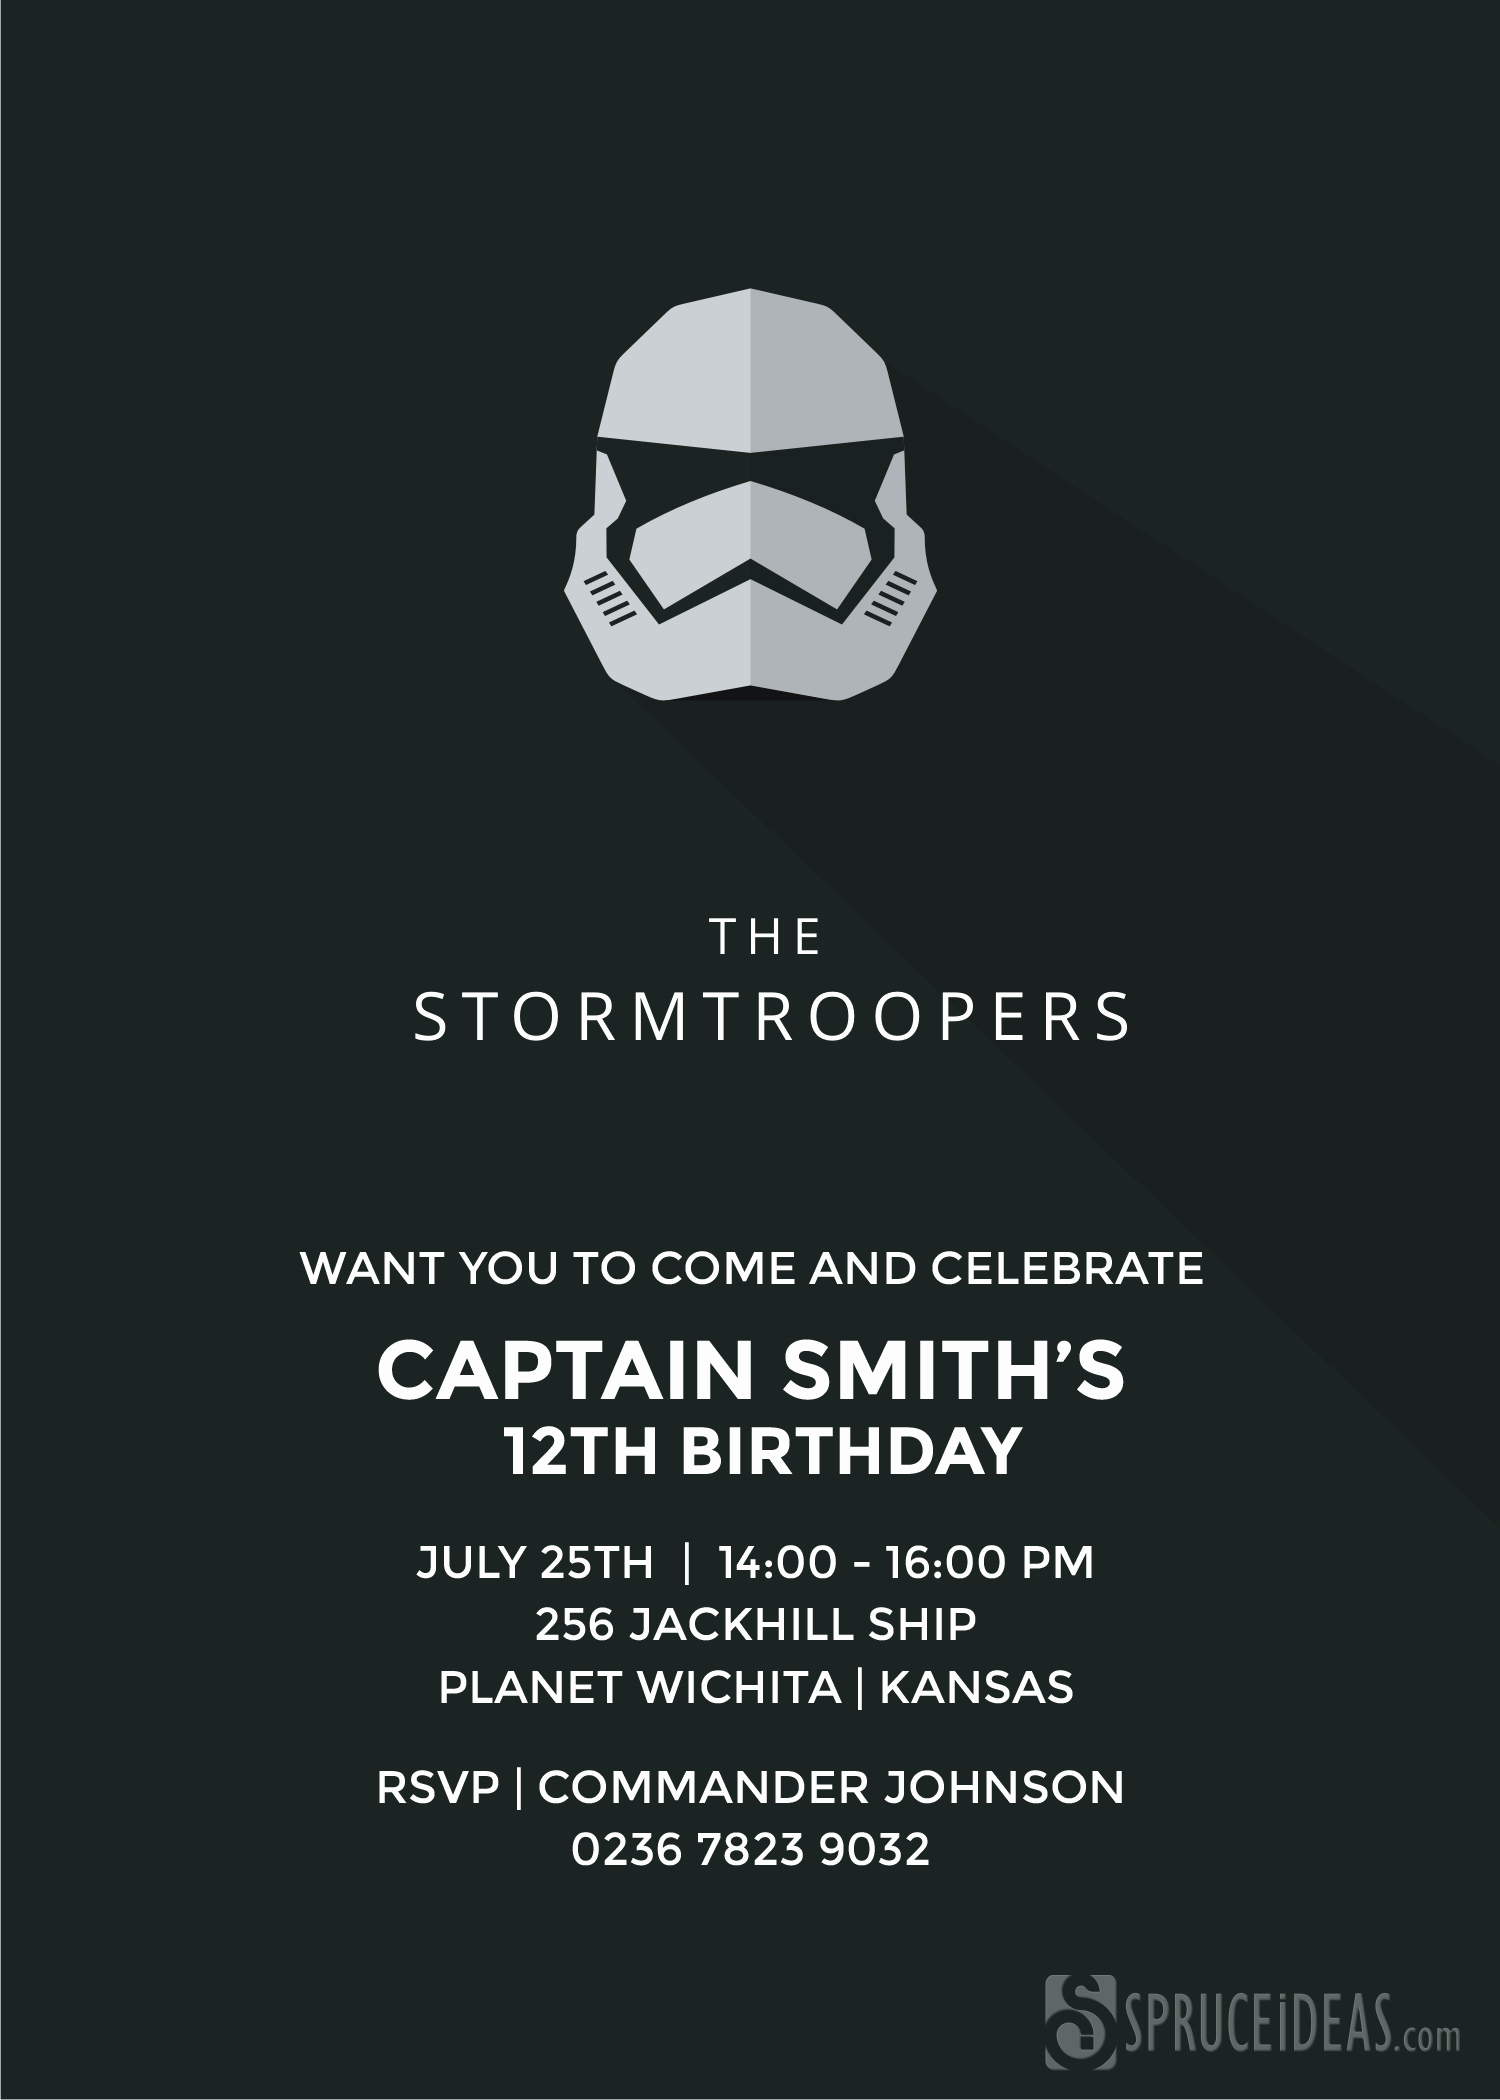 Star Wars Invitation Template Free Inspirational Star Wars Stormtrooper Birthday Invitation Template Card